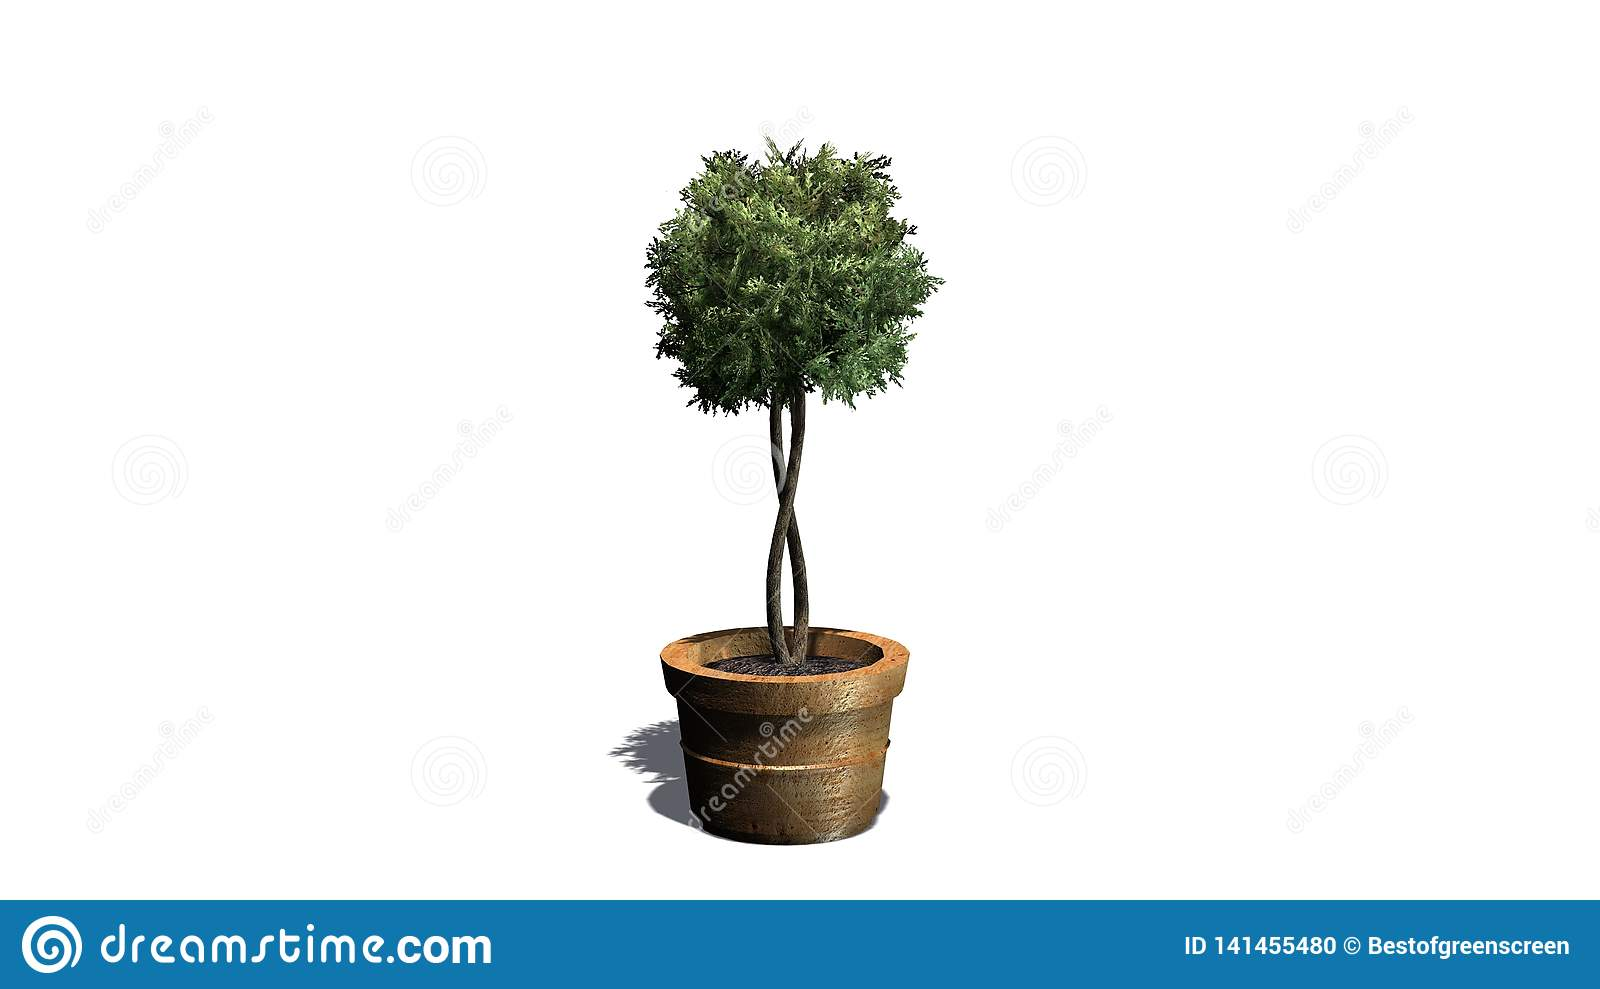 Boxwood Topiary In A Planting Pot With Shadow On The Floor Stock Illustration Illustration Of Background Boxwood 141455480